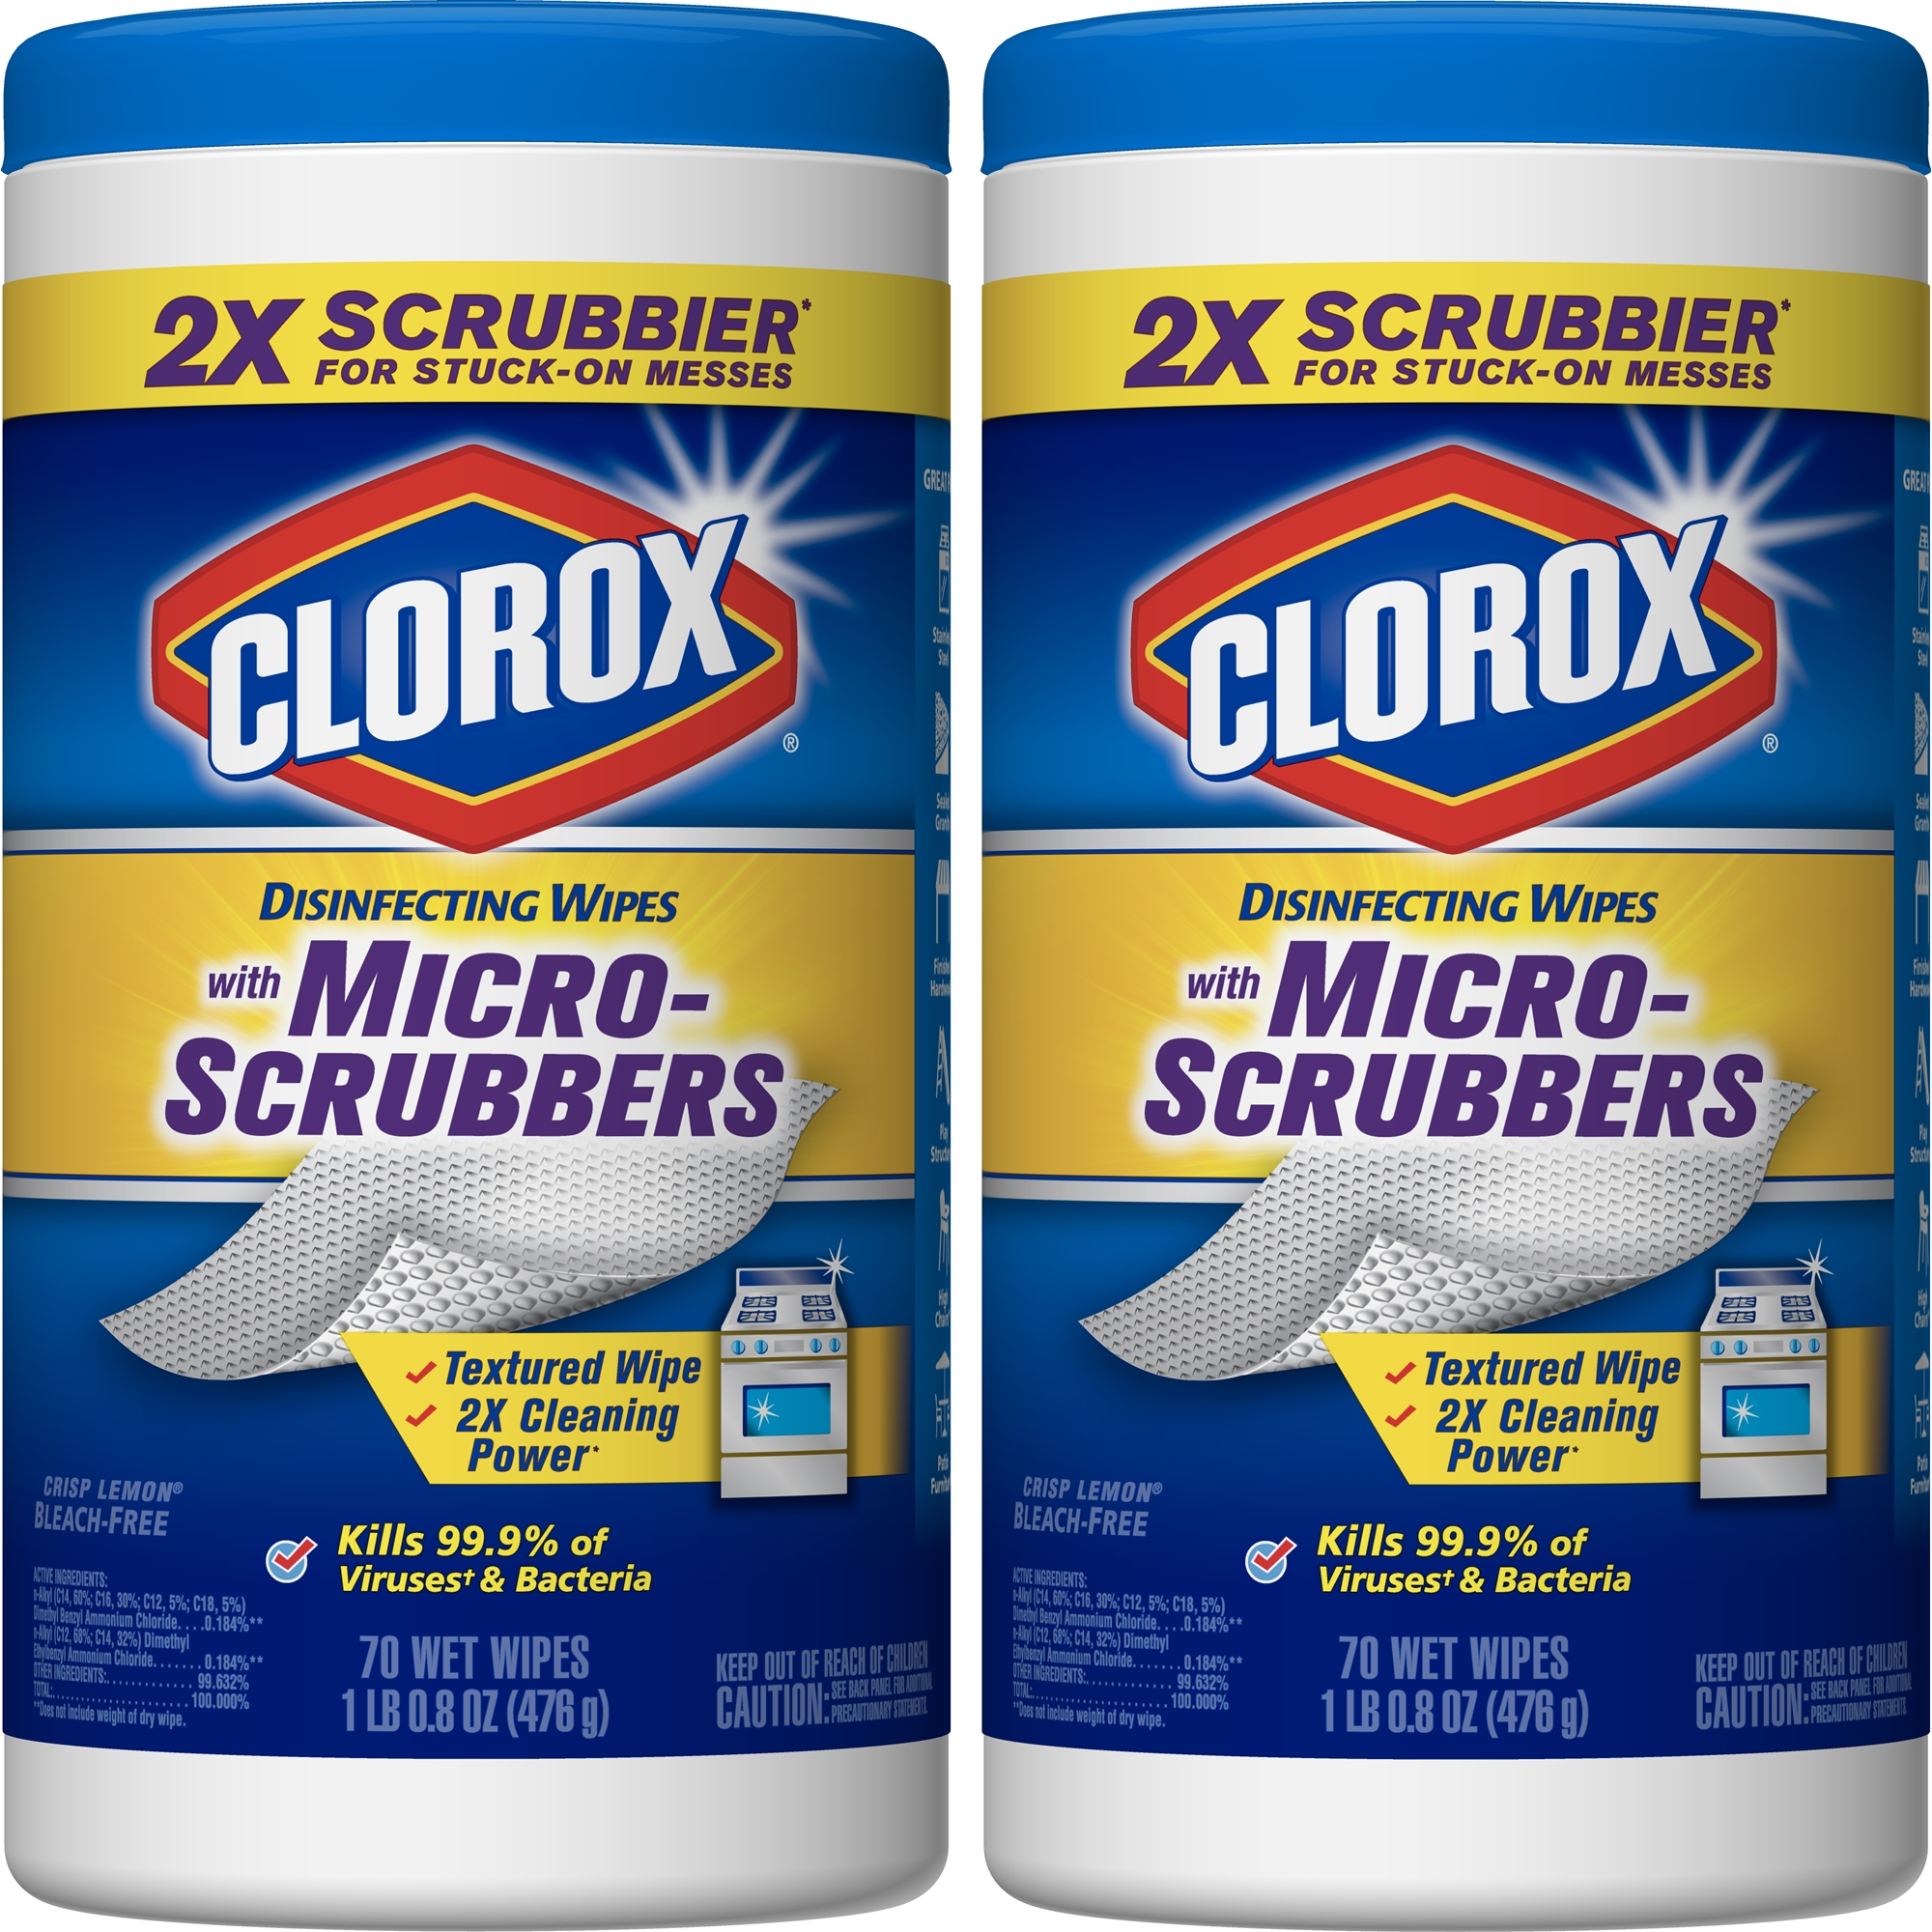 Clorox Disinfecting Wipes with Micro-Scrubbers Value Pack, Bleach Free Cleaning Wipes, Crisp Lemon - 70 ct Each (Pack of 2)